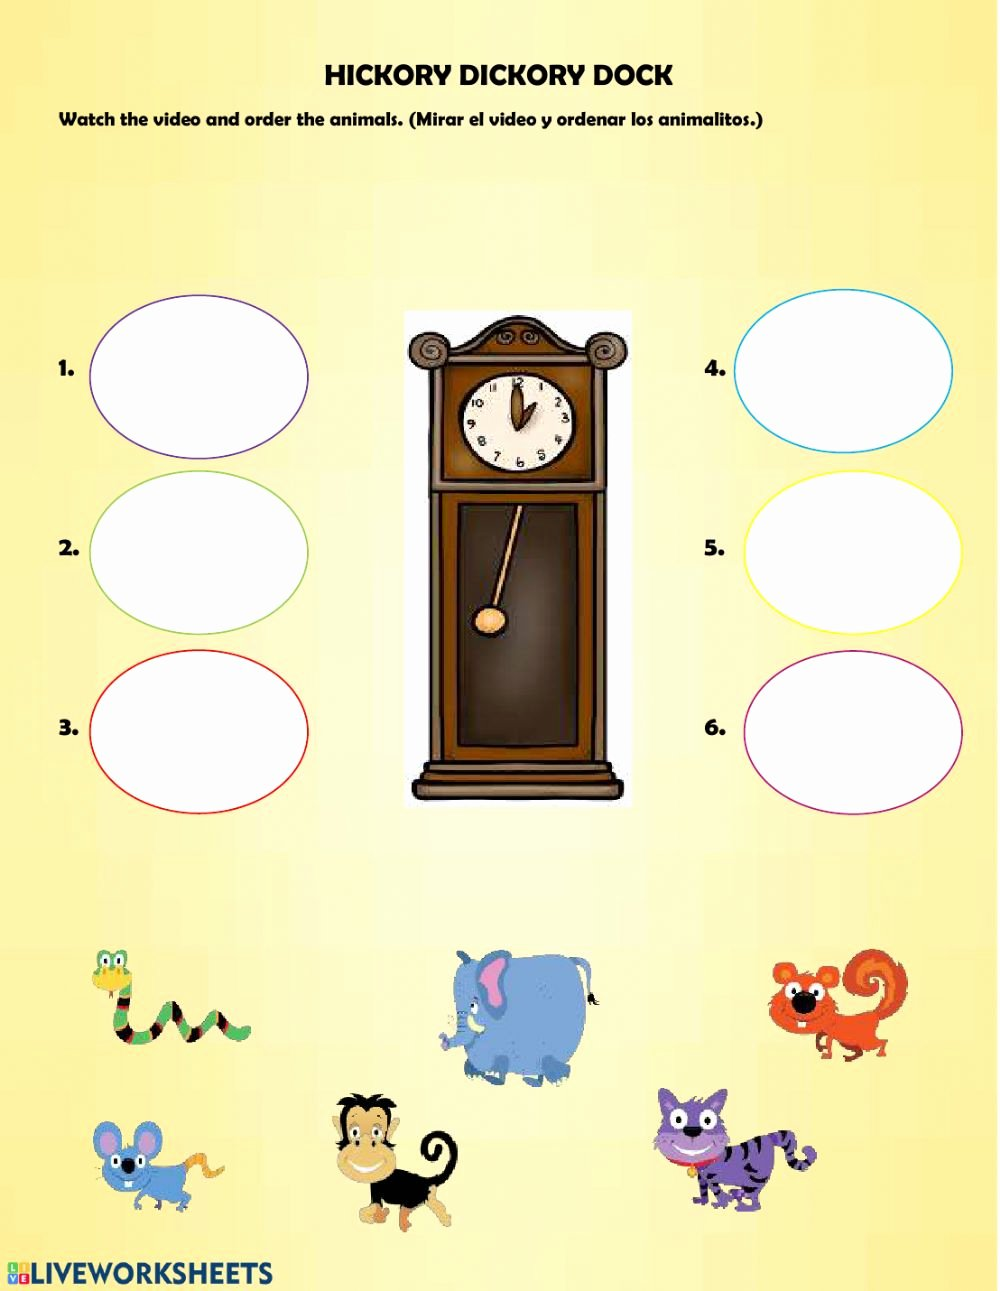 Hickory Dickory Dock Worksheets for Preschoolers Kids Hickory Dickory Dock Interactive Worksheet